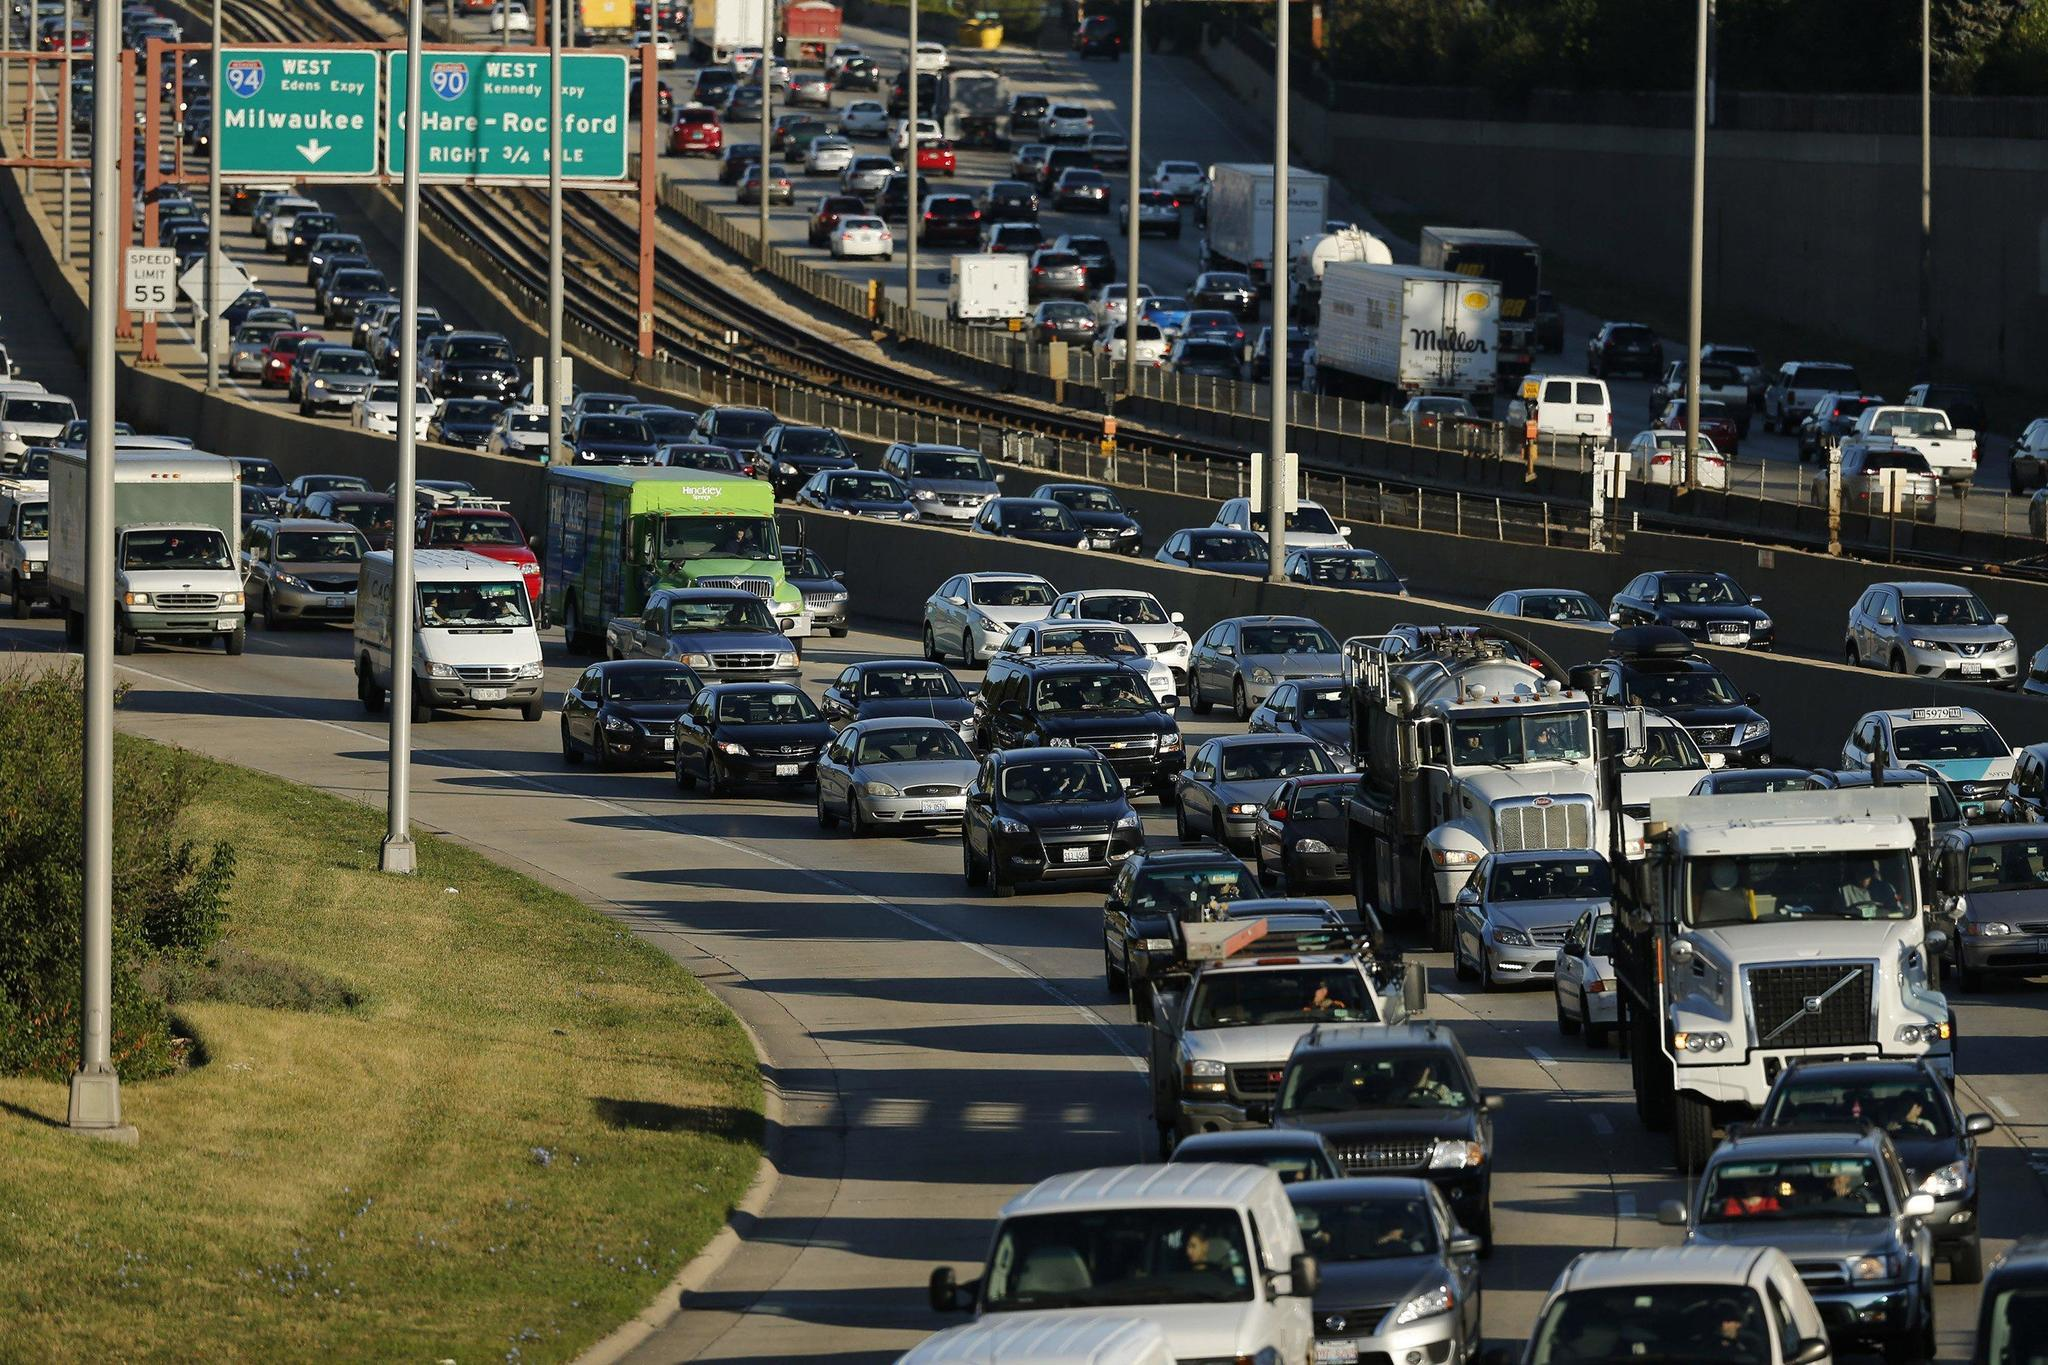 Traffic predictions, or what the dream of the bus 53